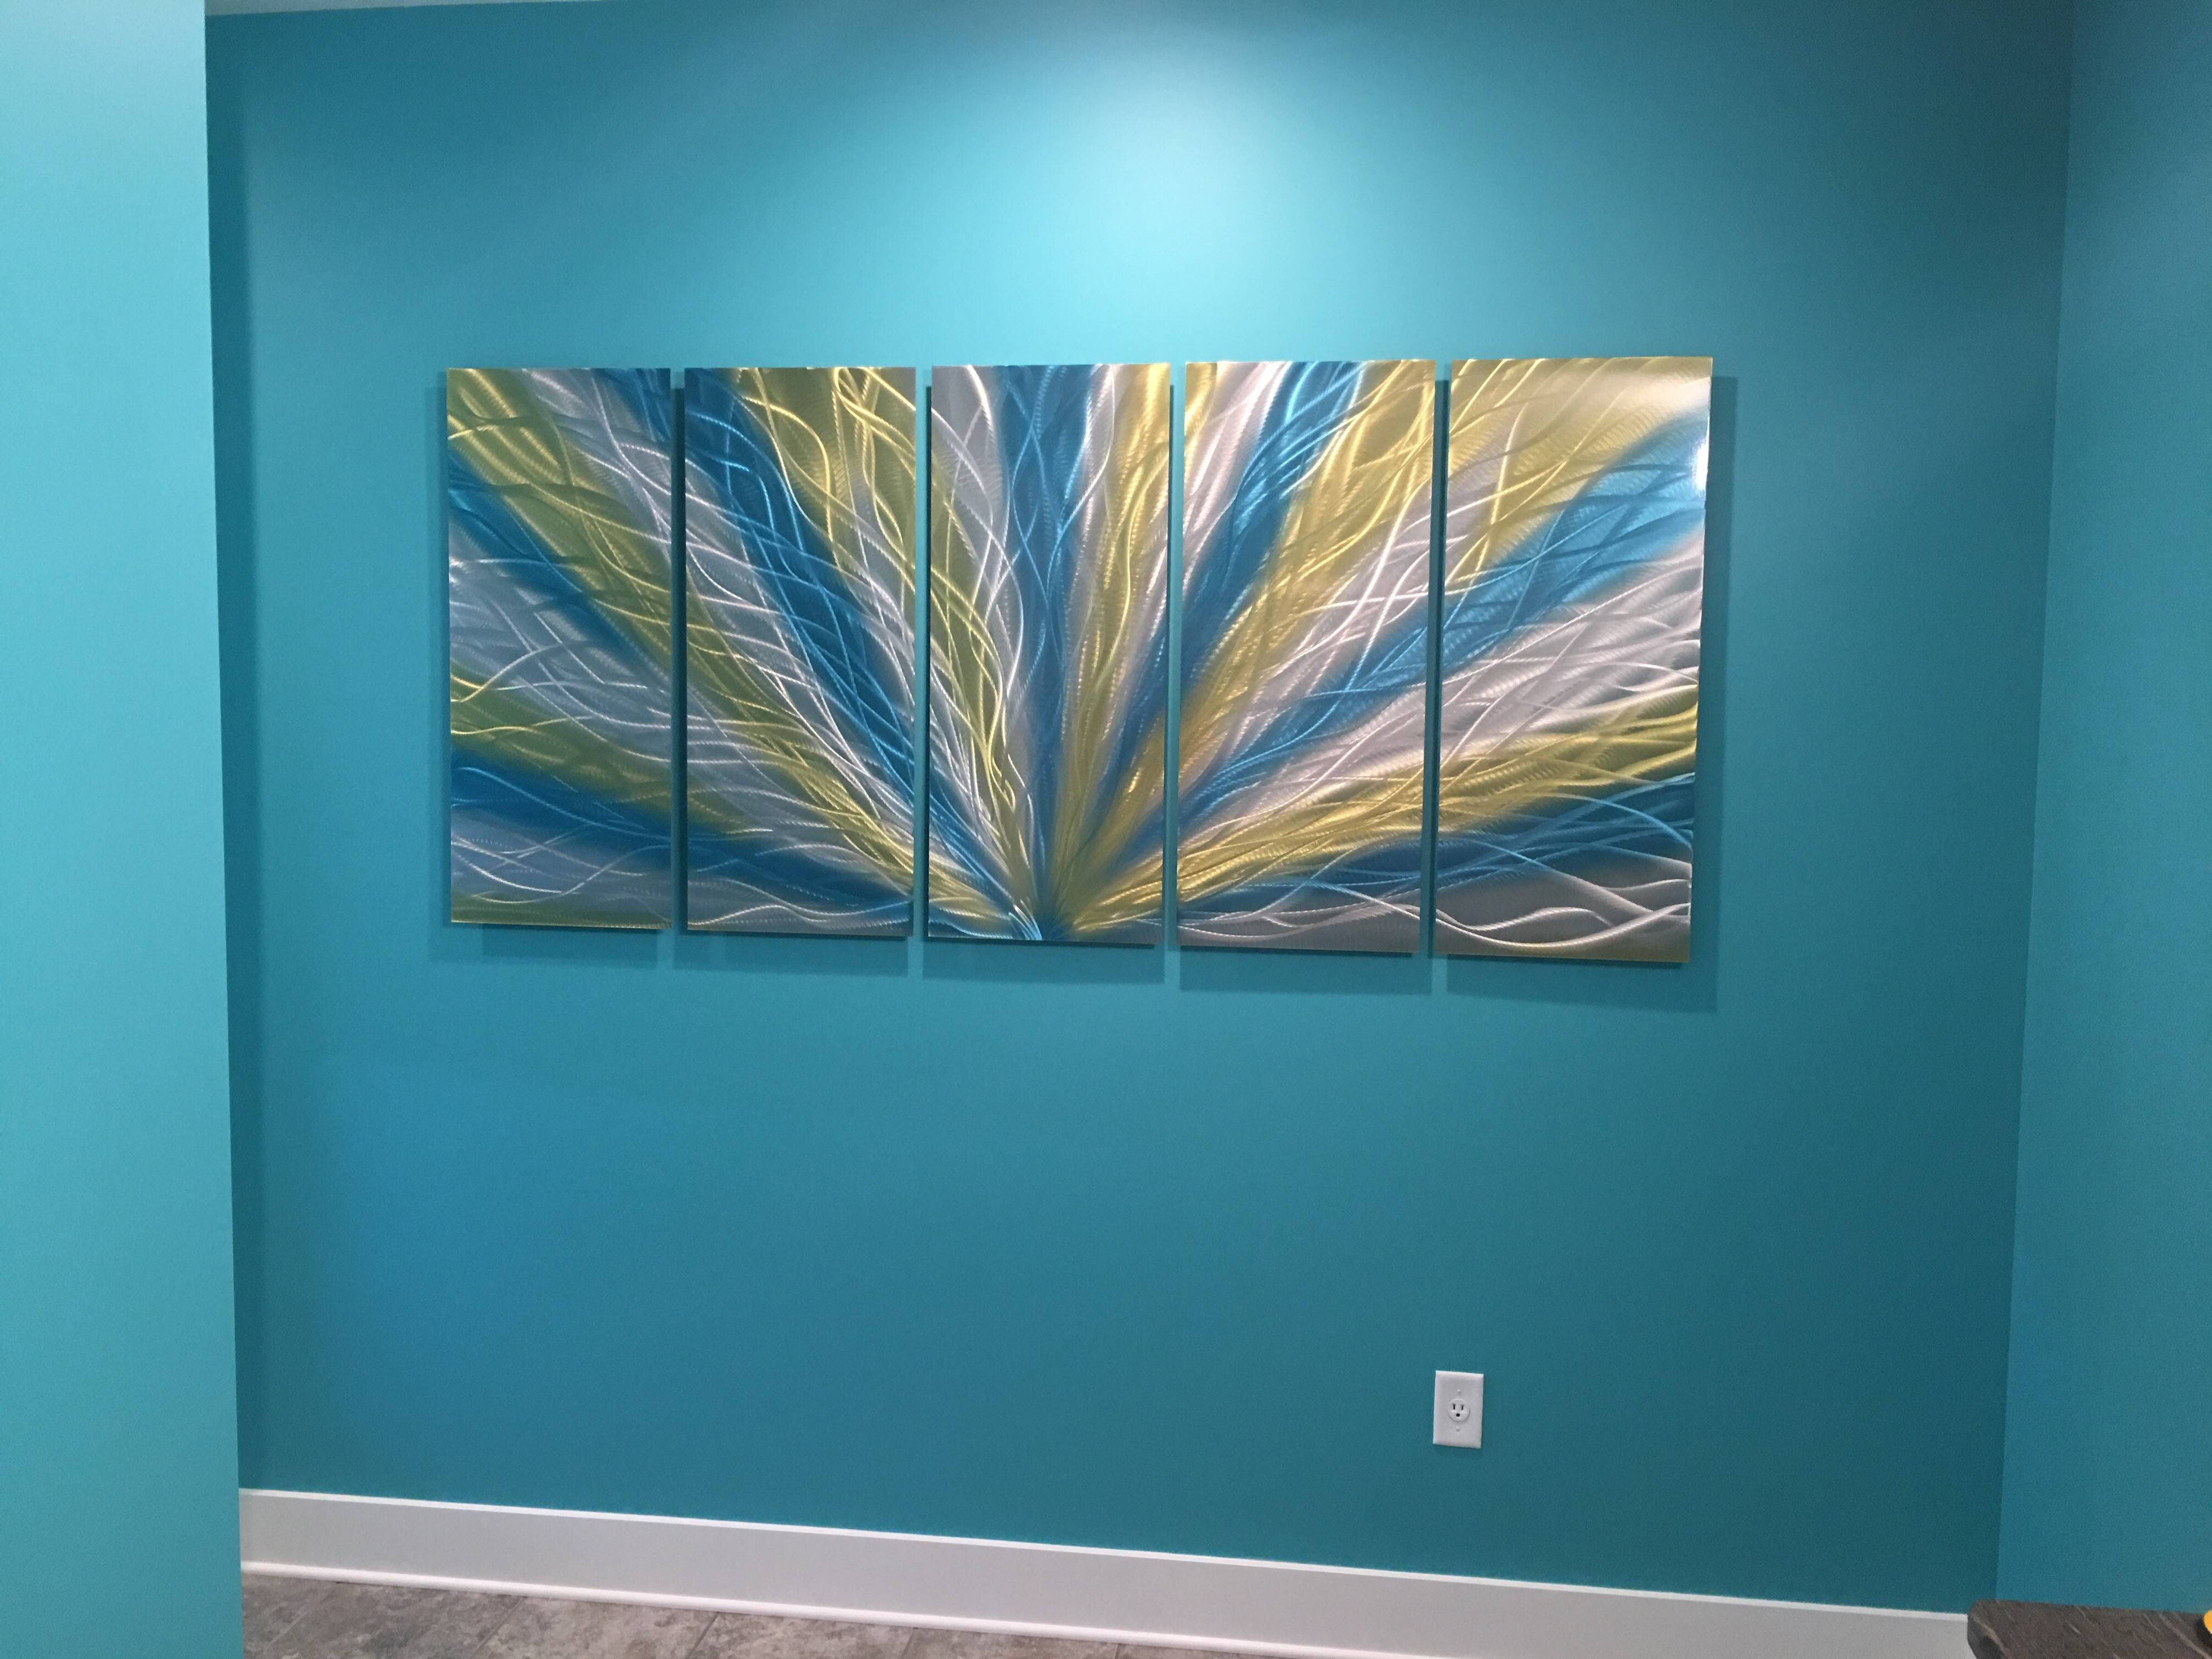 Radiance Blue Yellow 36X79 – Metal Wall Art Abstract Sculpture In 2018 Yellow And Blue Wall Art (Gallery 4 of 20)